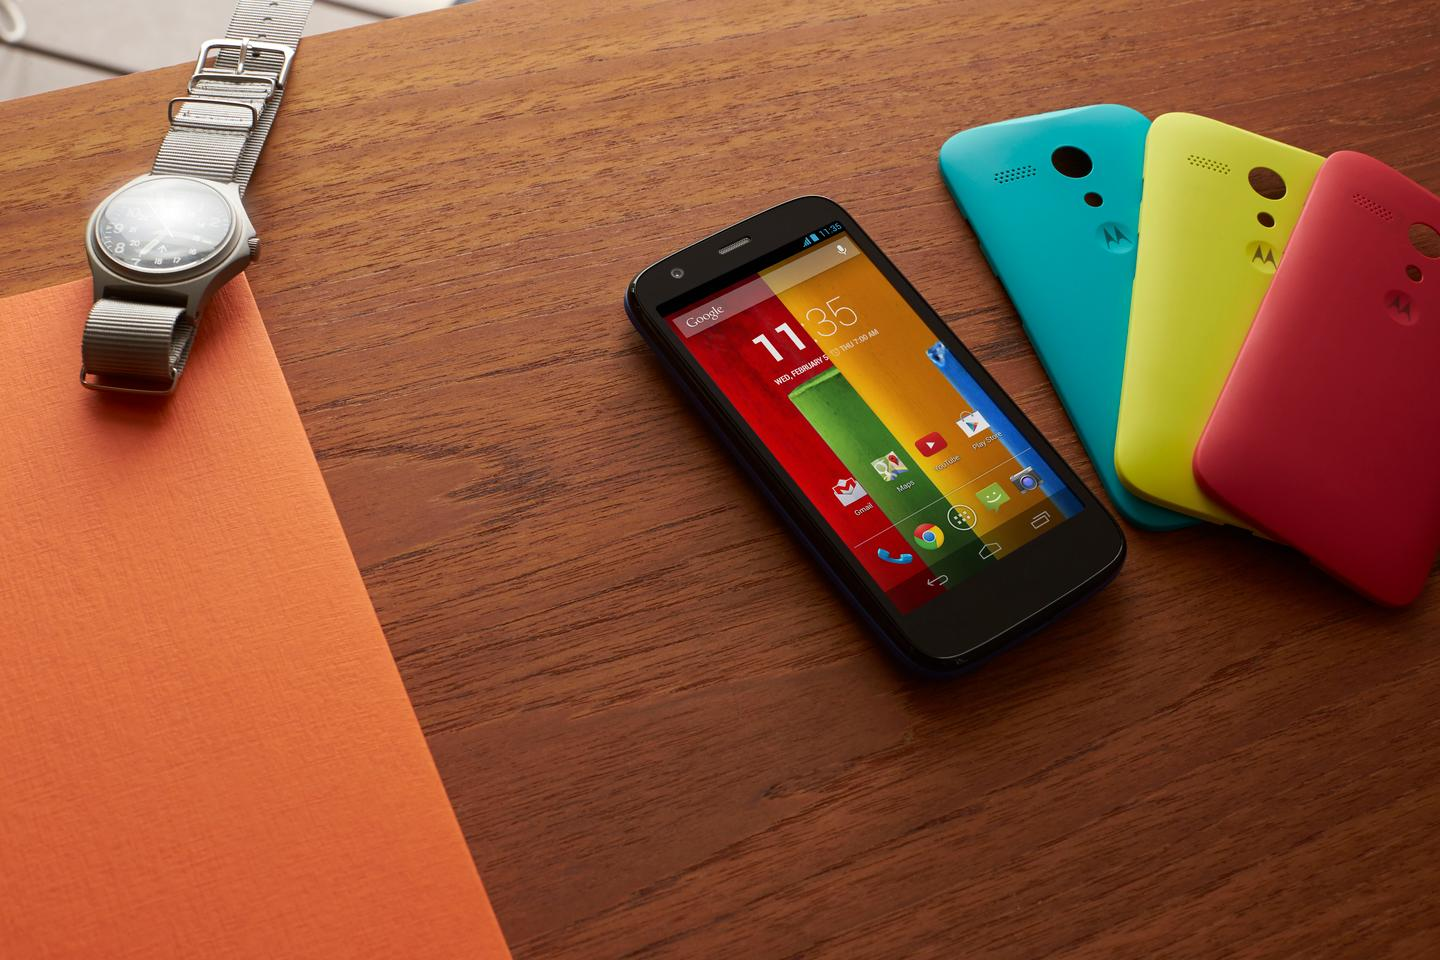 Motorola just announced the Moto G, a solid phone with a rock-bottom price